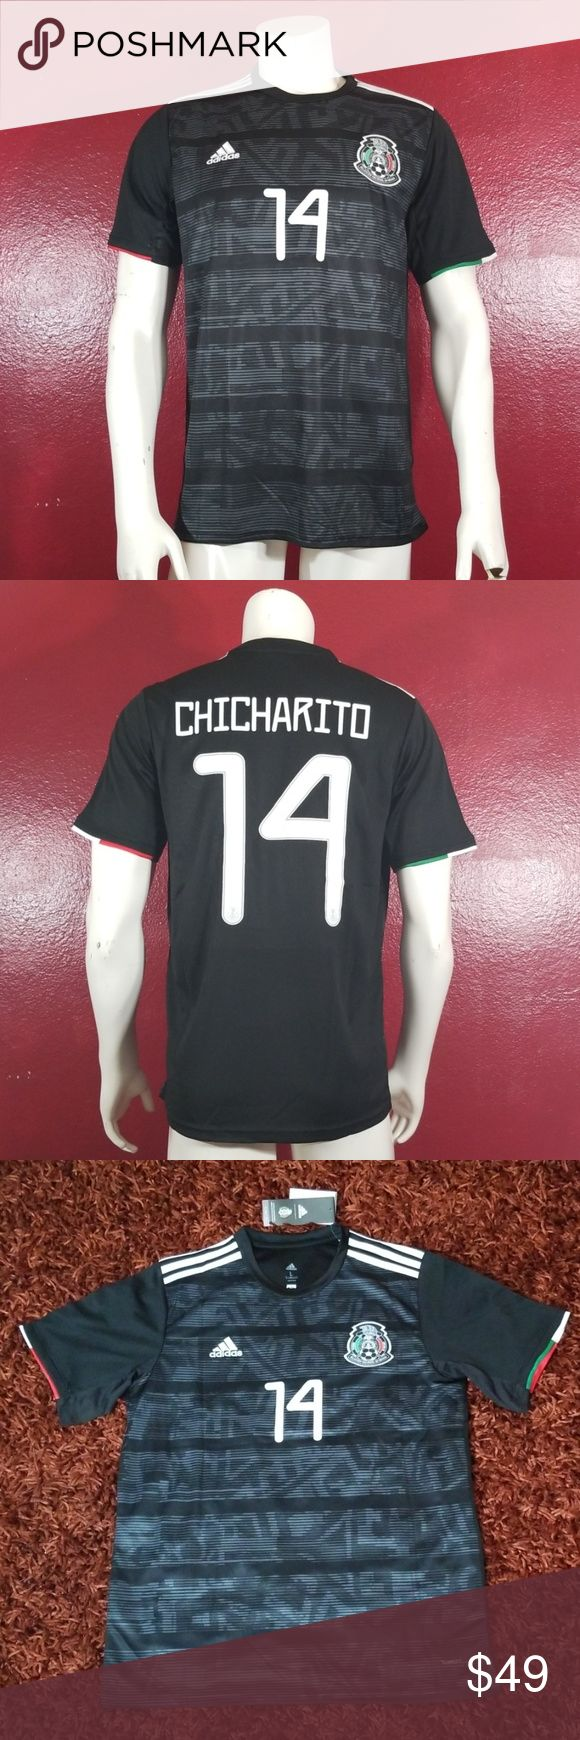 CHICHARITO MEXICO COPA ORO SOCCER JERSEY Brand new  Never used  Same bussiness day shipping Perfect gift for your friend, boyfriend or husband Check m…